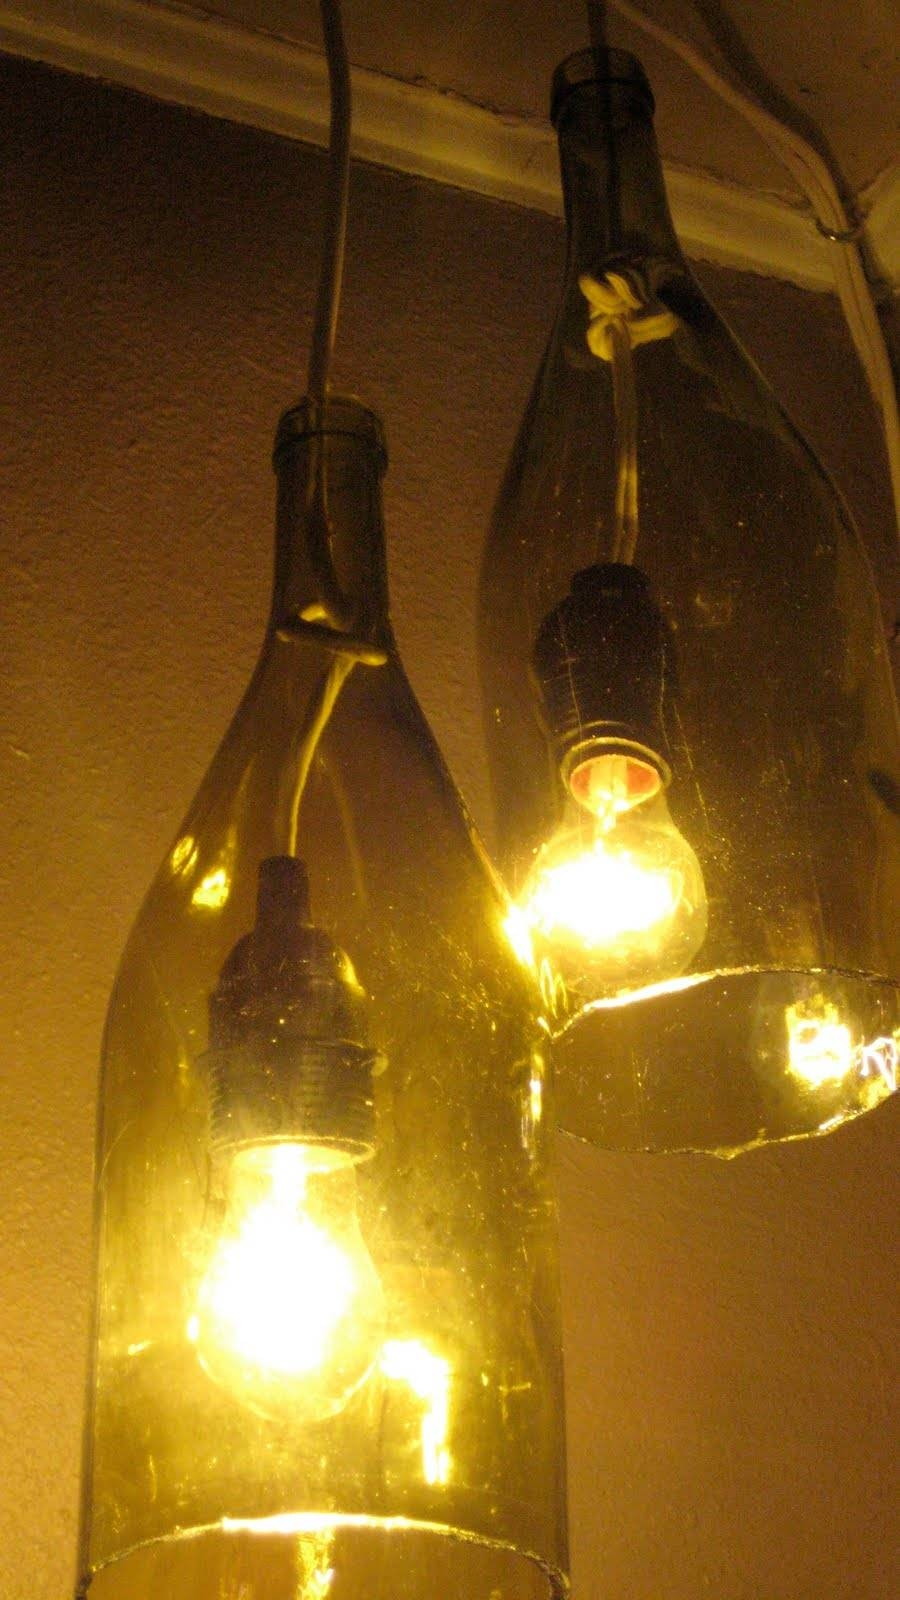 Remodelaholic | 14 Great Diy Pendant Lights And Link Party with regard to Wine Bottle Pendants (Image 9 of 15)